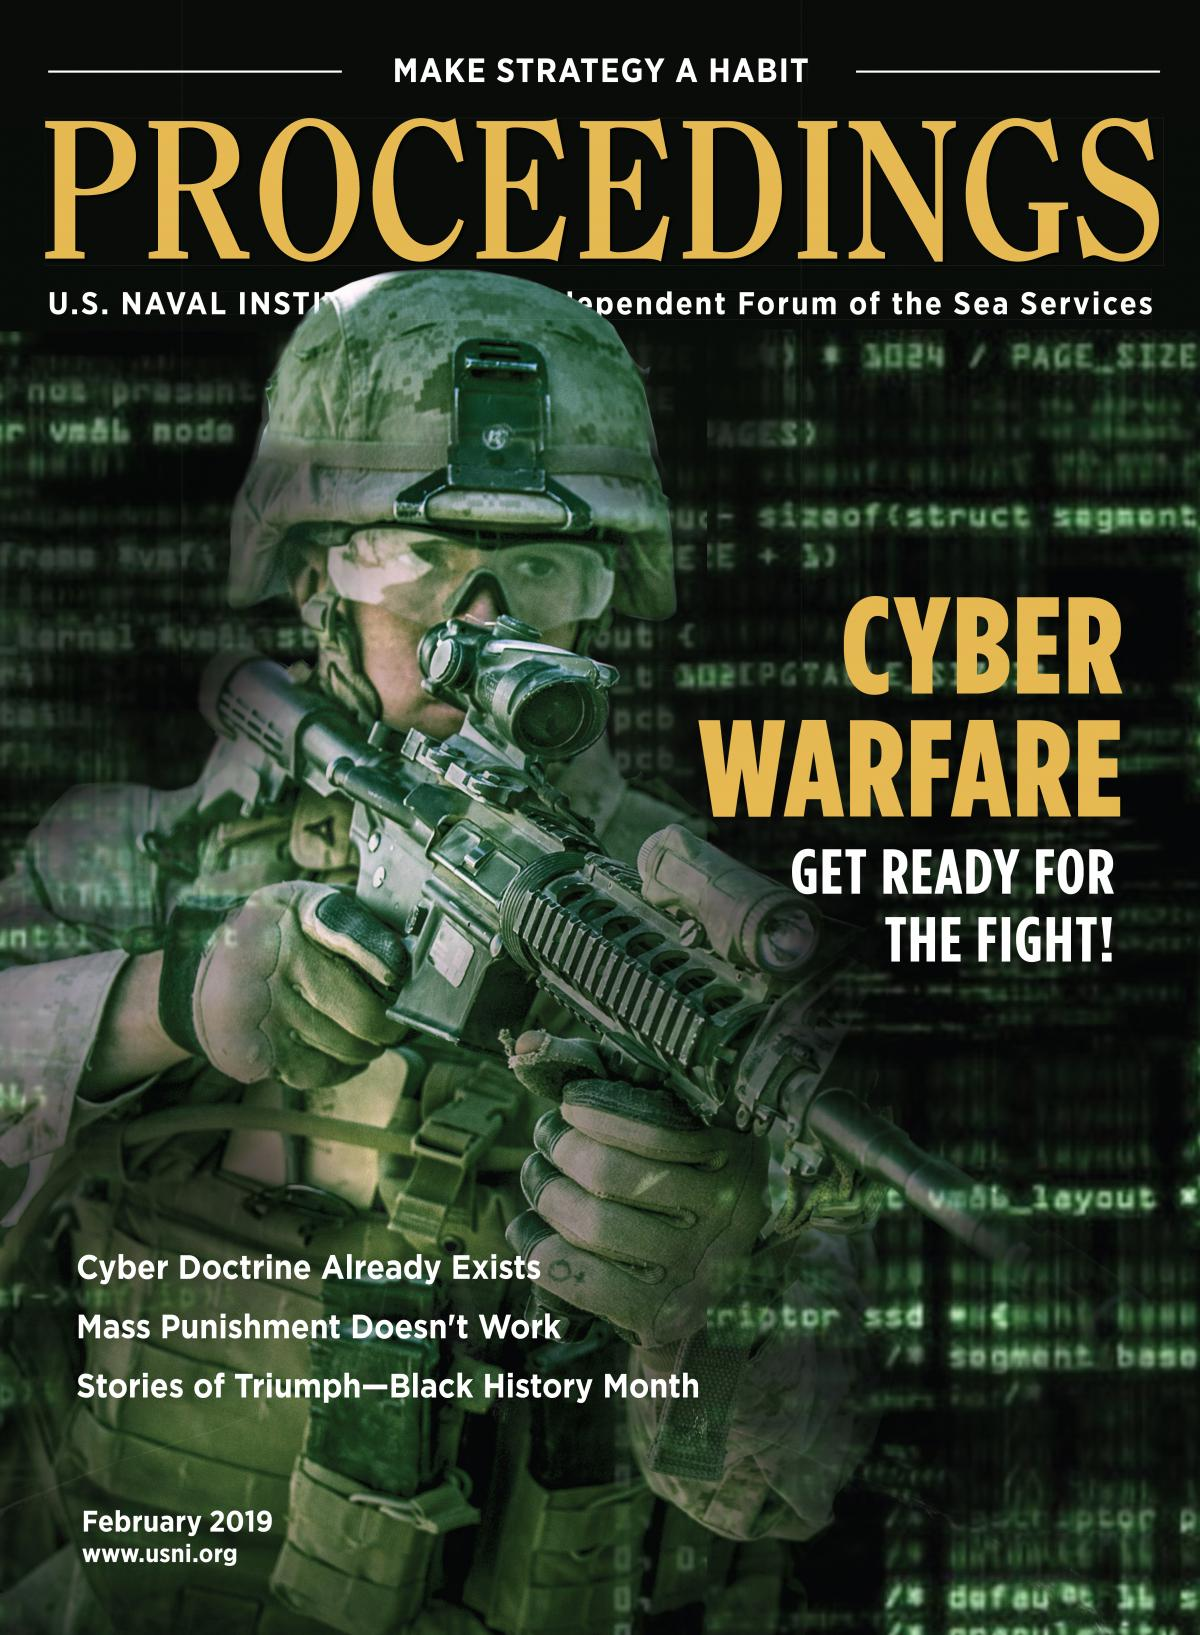 Proceedings Magazine - February 2019 Vol. 145/2/1,392 Cover